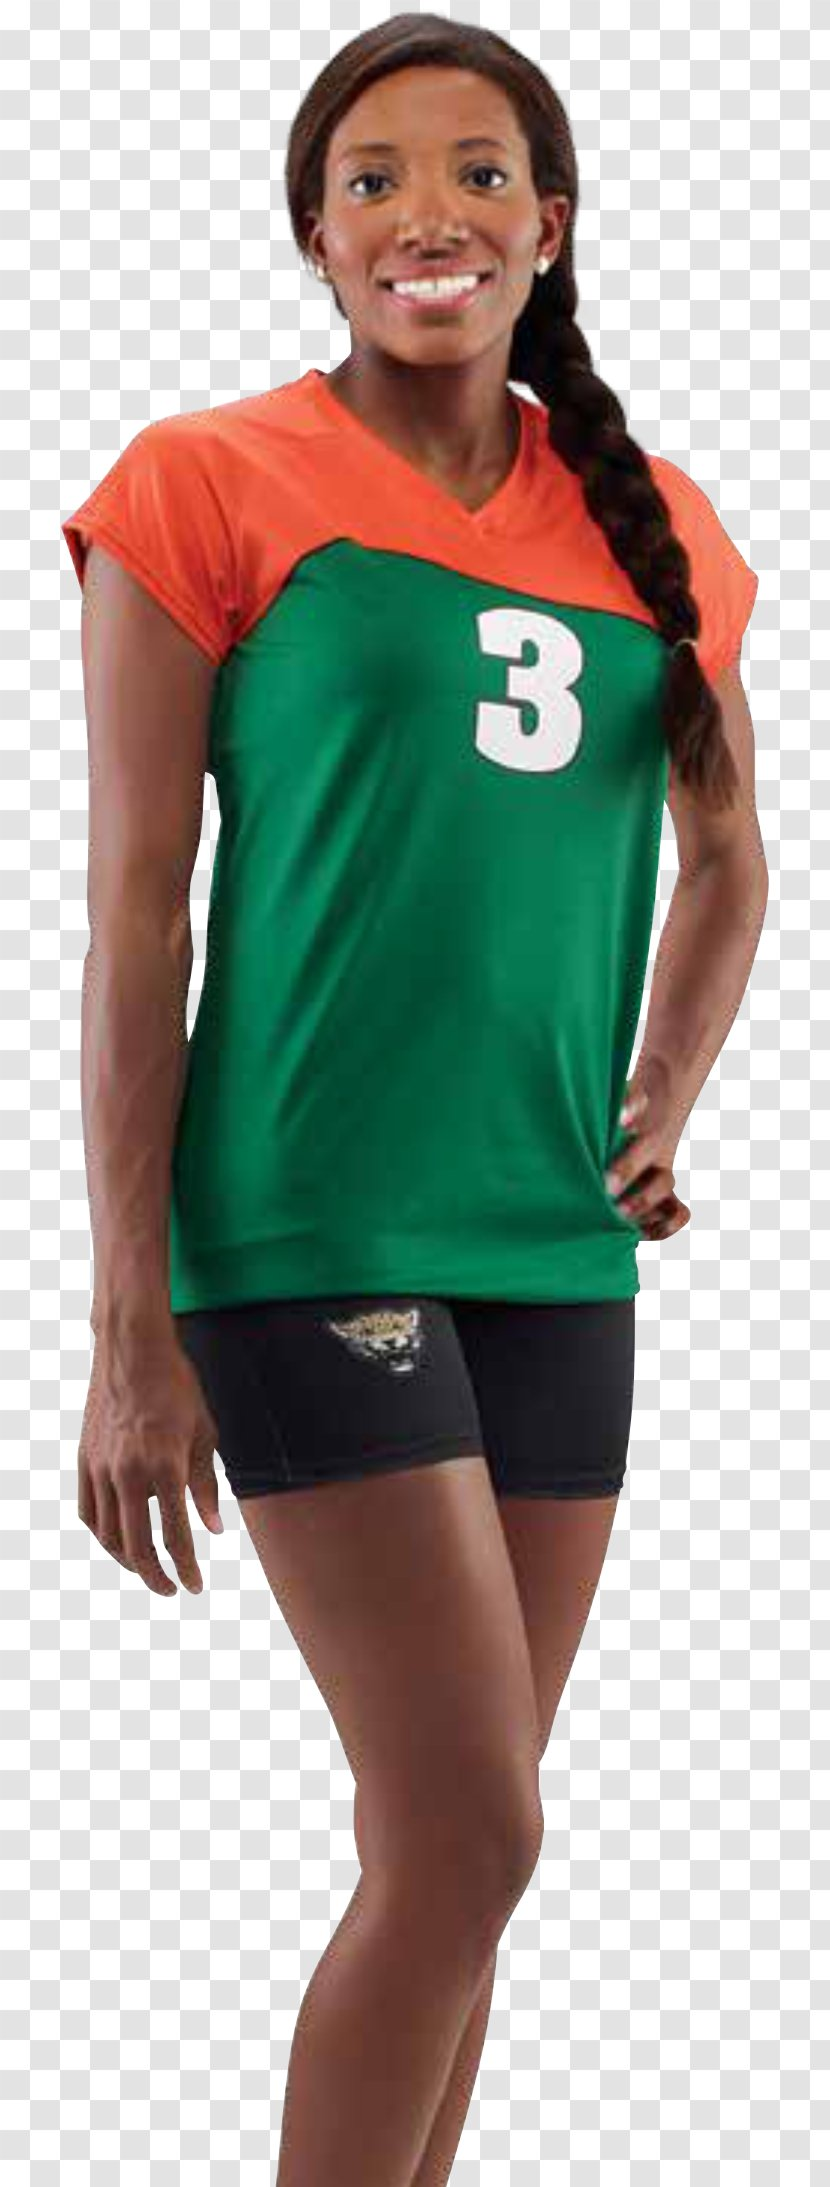 Jersey T-shirt Sleeve Volleyball Uniform - Watercolor Transparent PNG